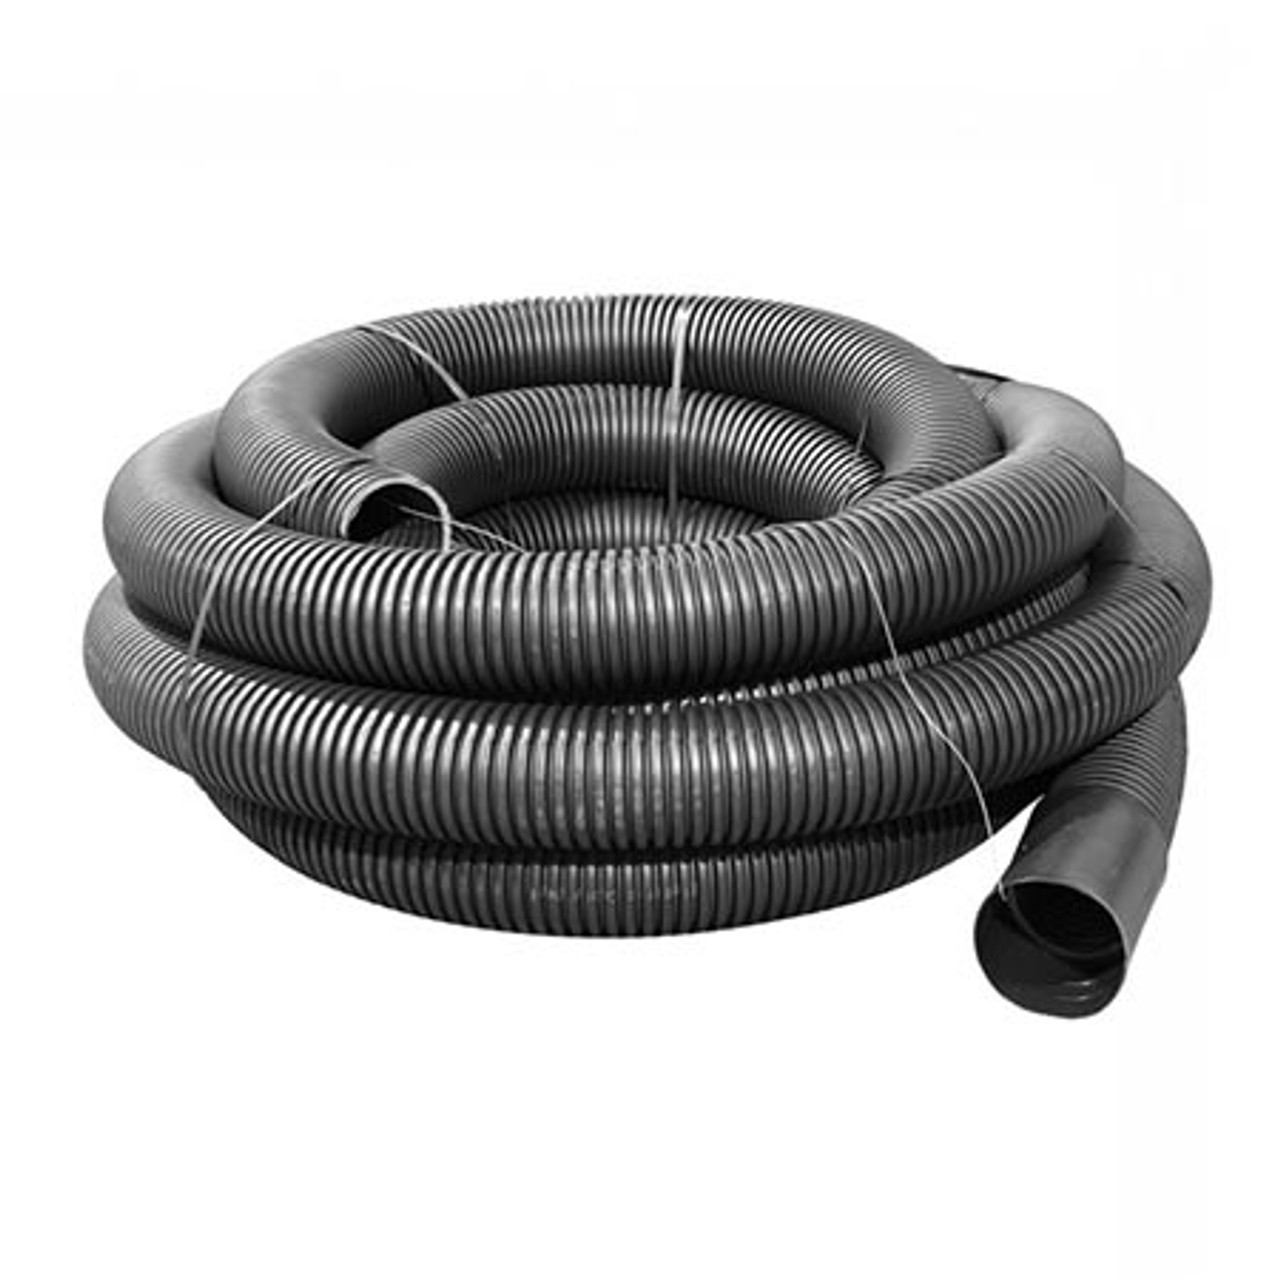 137/160mm class 3 power ducting coil (25m).